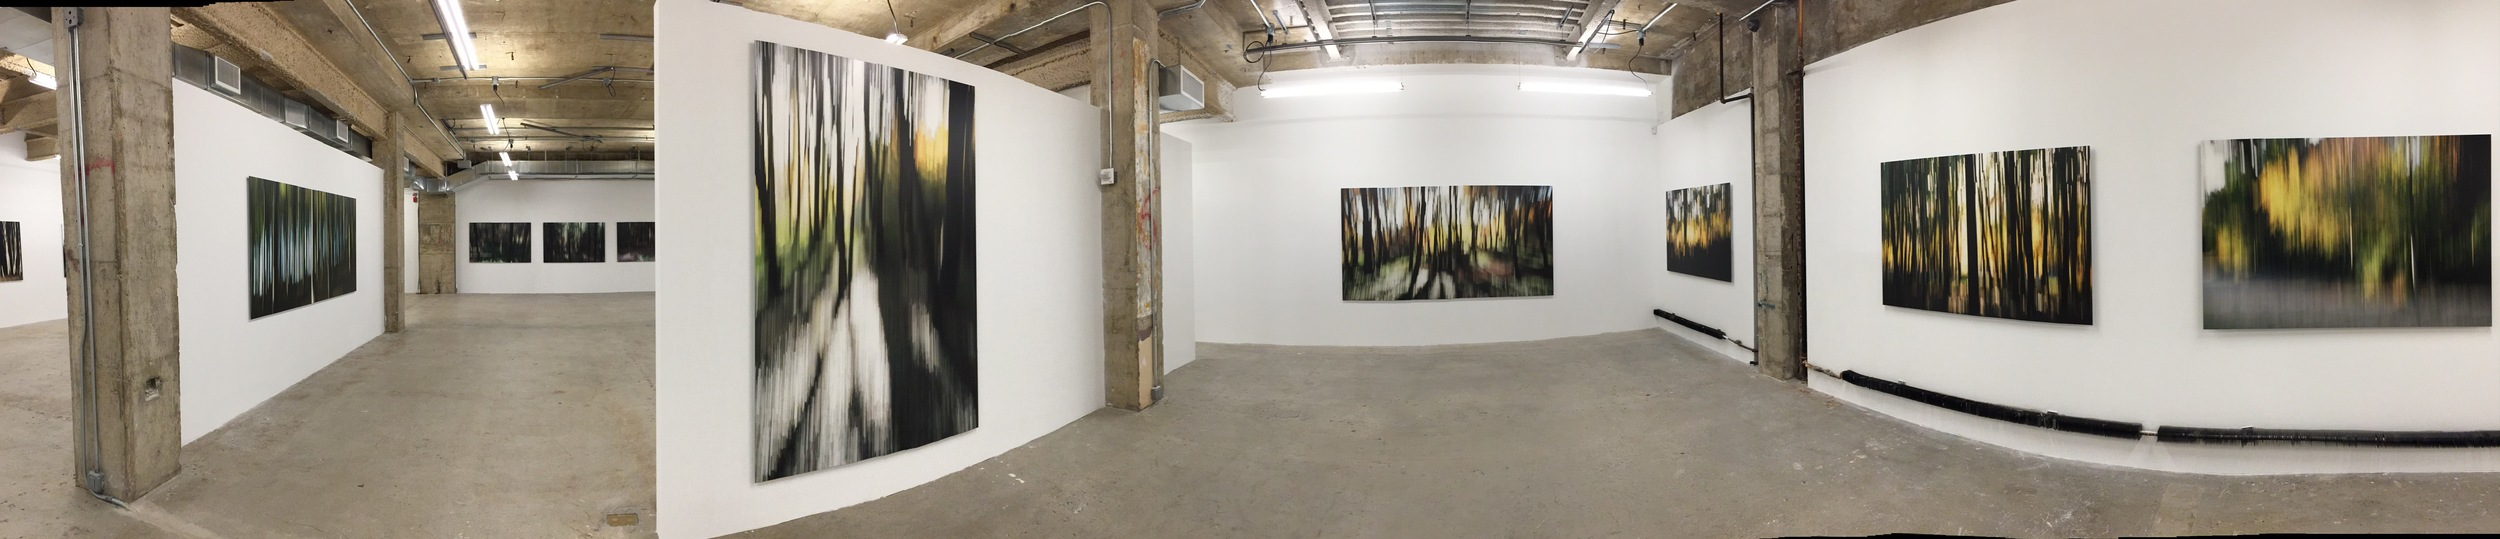 Exhibition Image, Charles March,  WOOD LAND,  Venus Over Manhattan, New York. Photo Credit: Cincala Art Advisory